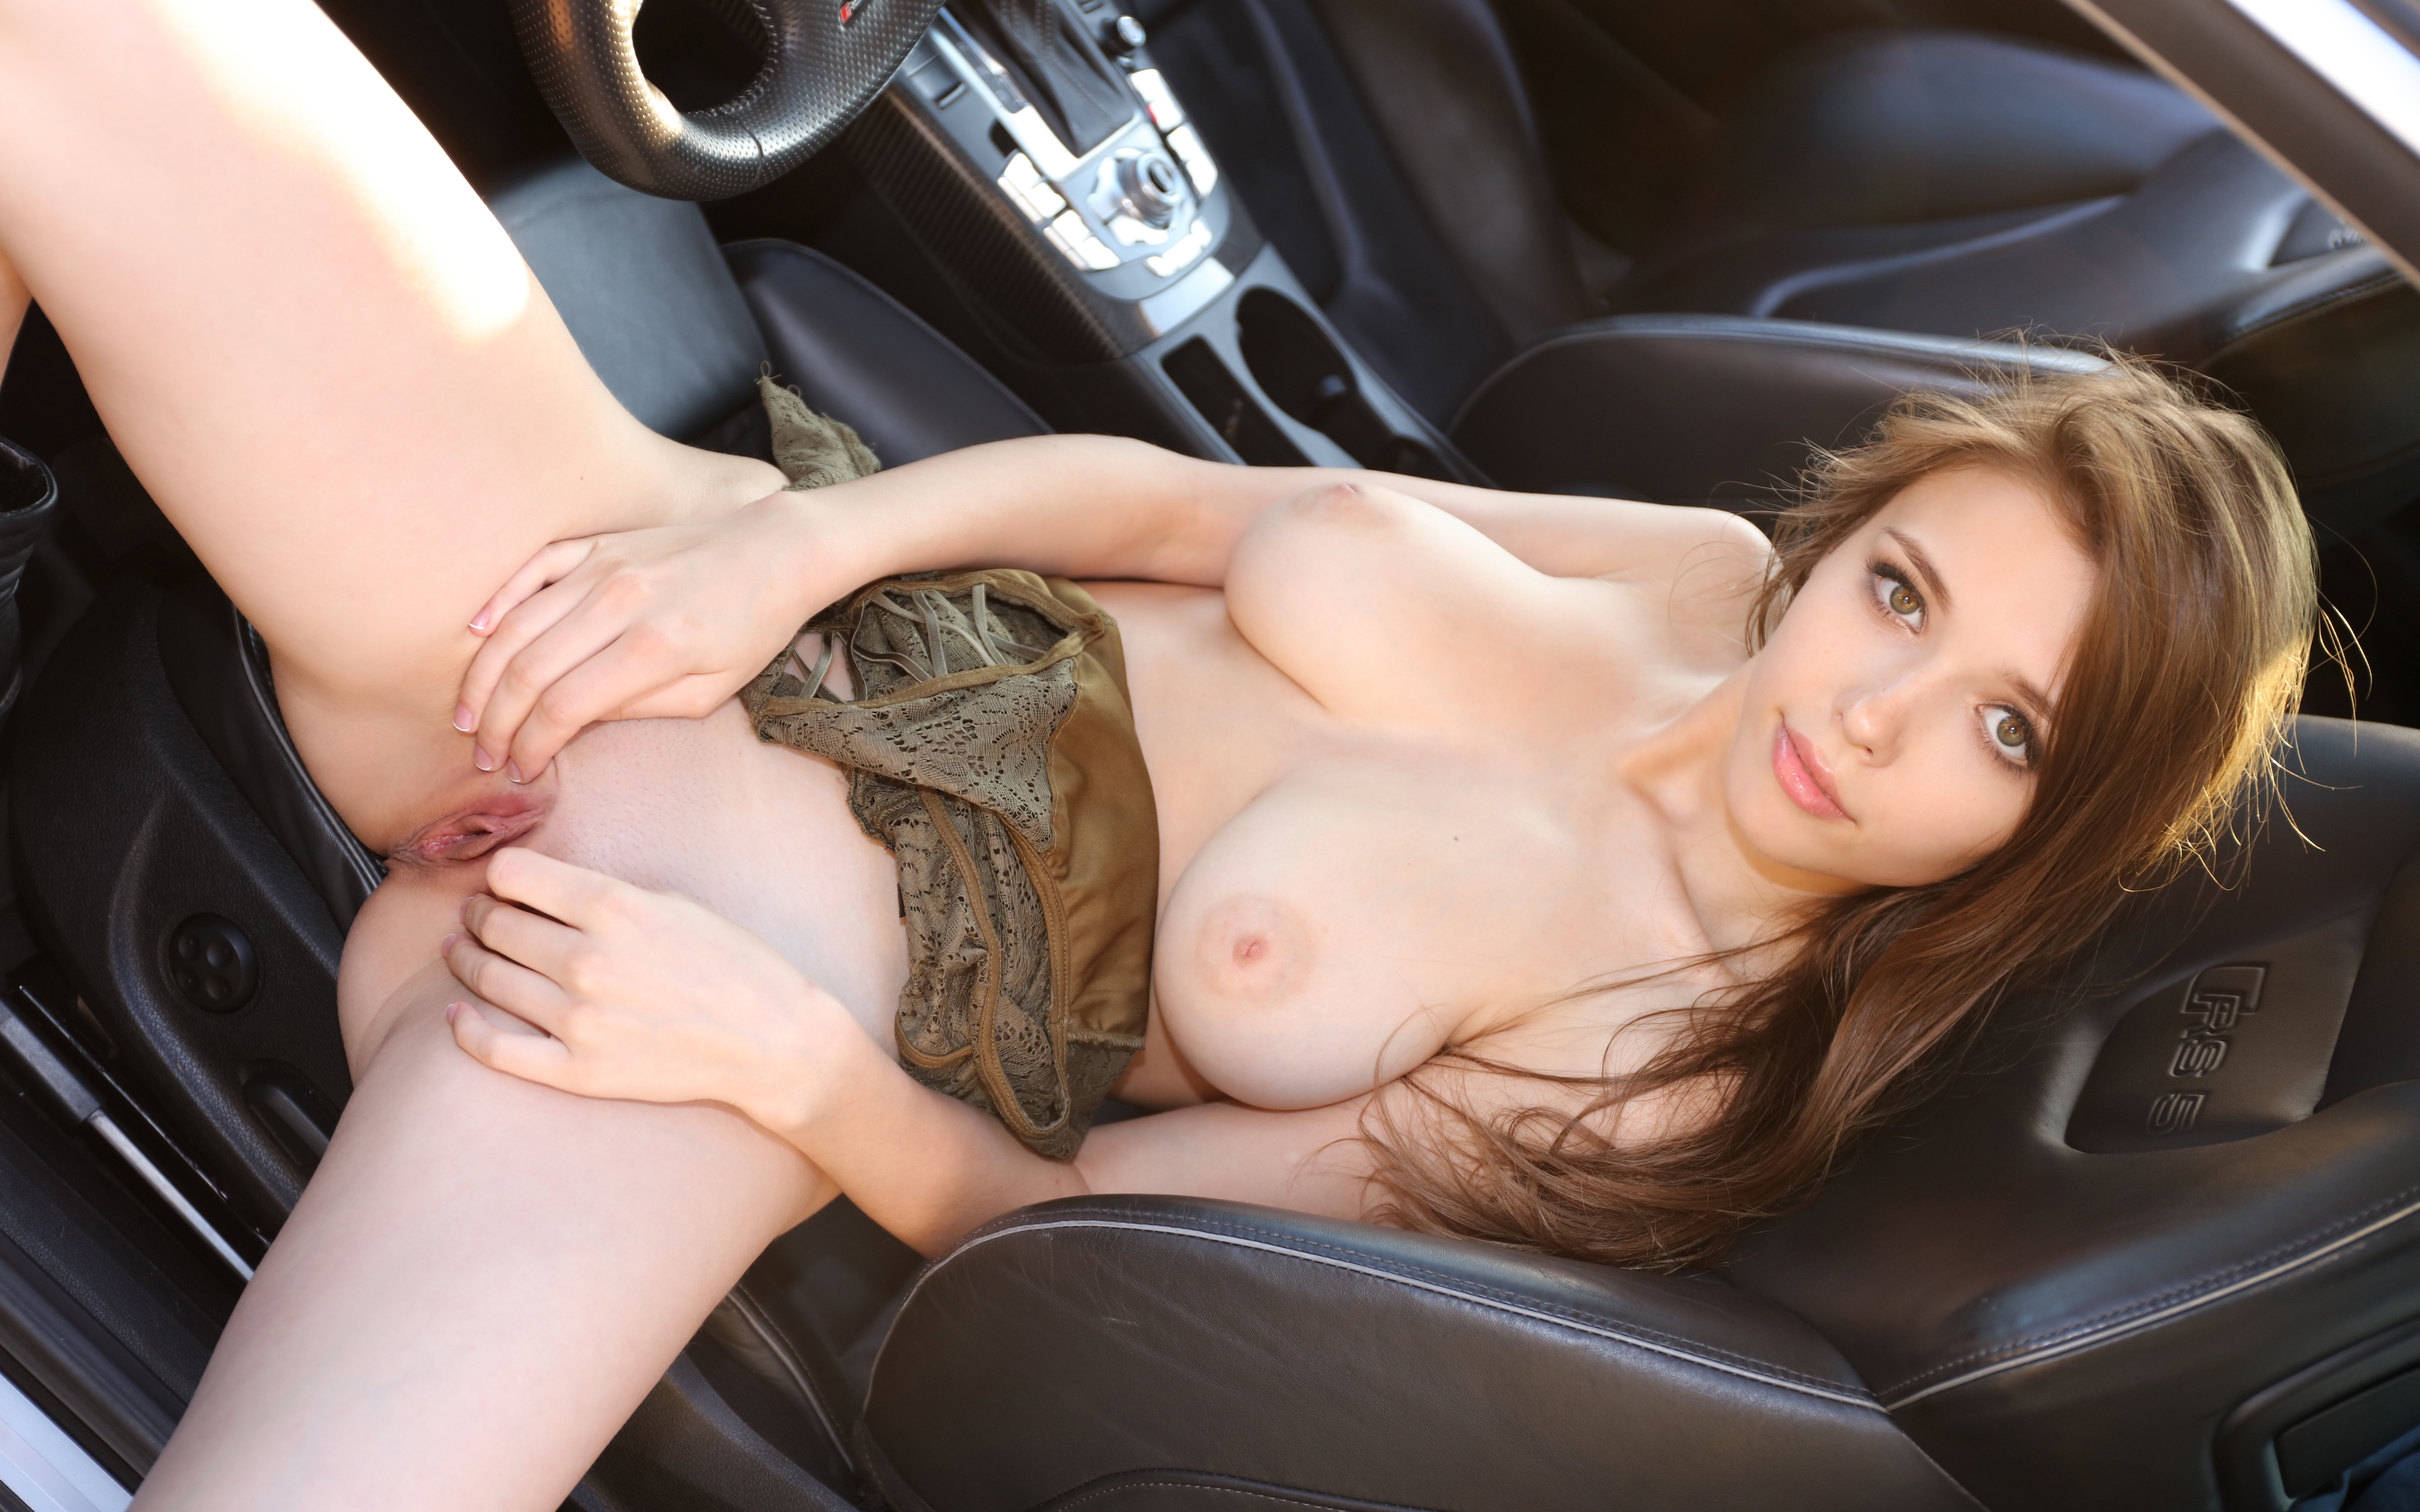 This car stuck girls naked